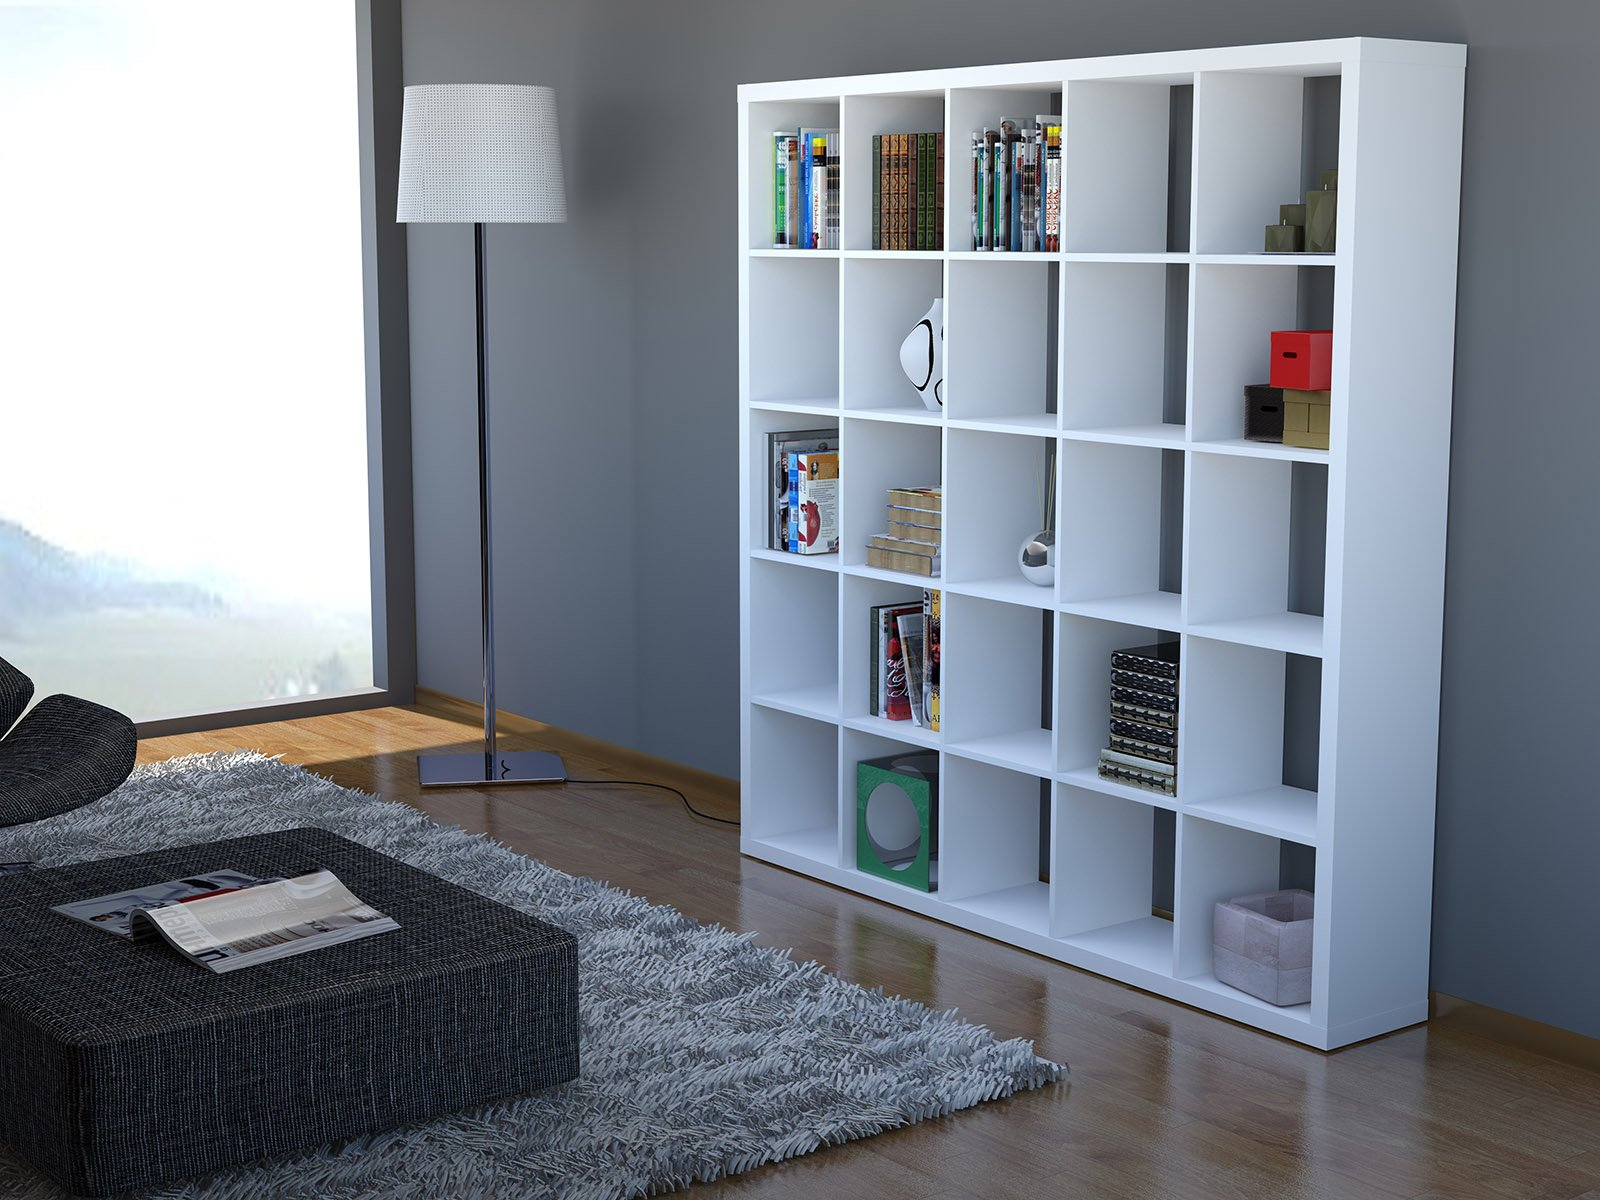 Camerette Ikea Componibili Mobili Pictures to pin on Pinterest